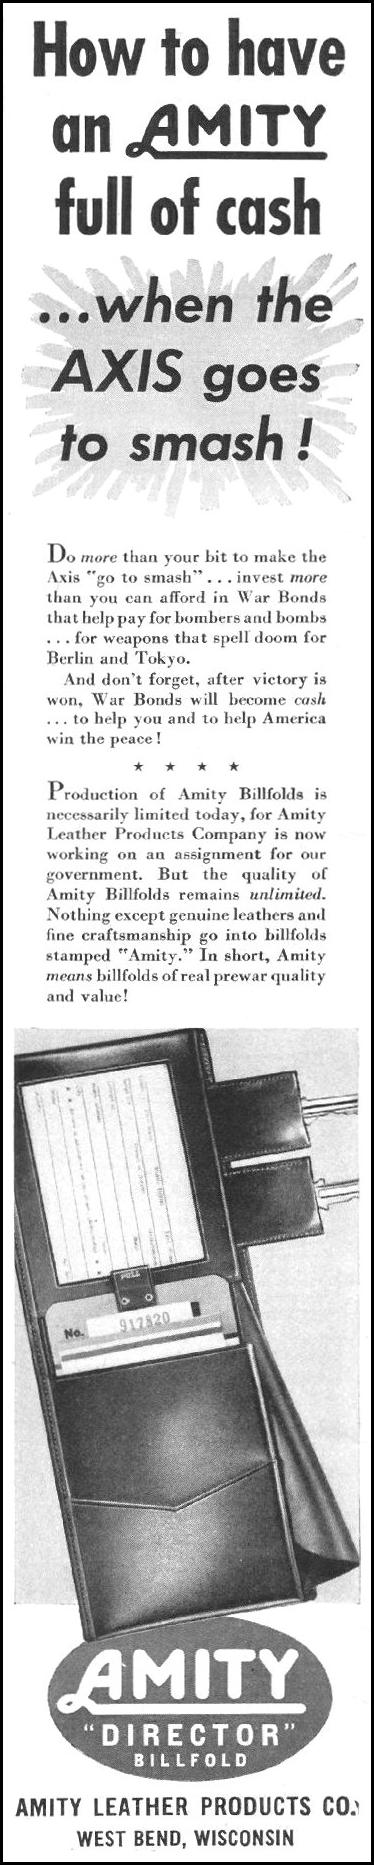 AMITY BILLFOLDS LIFE 10/25/1943 p. 2